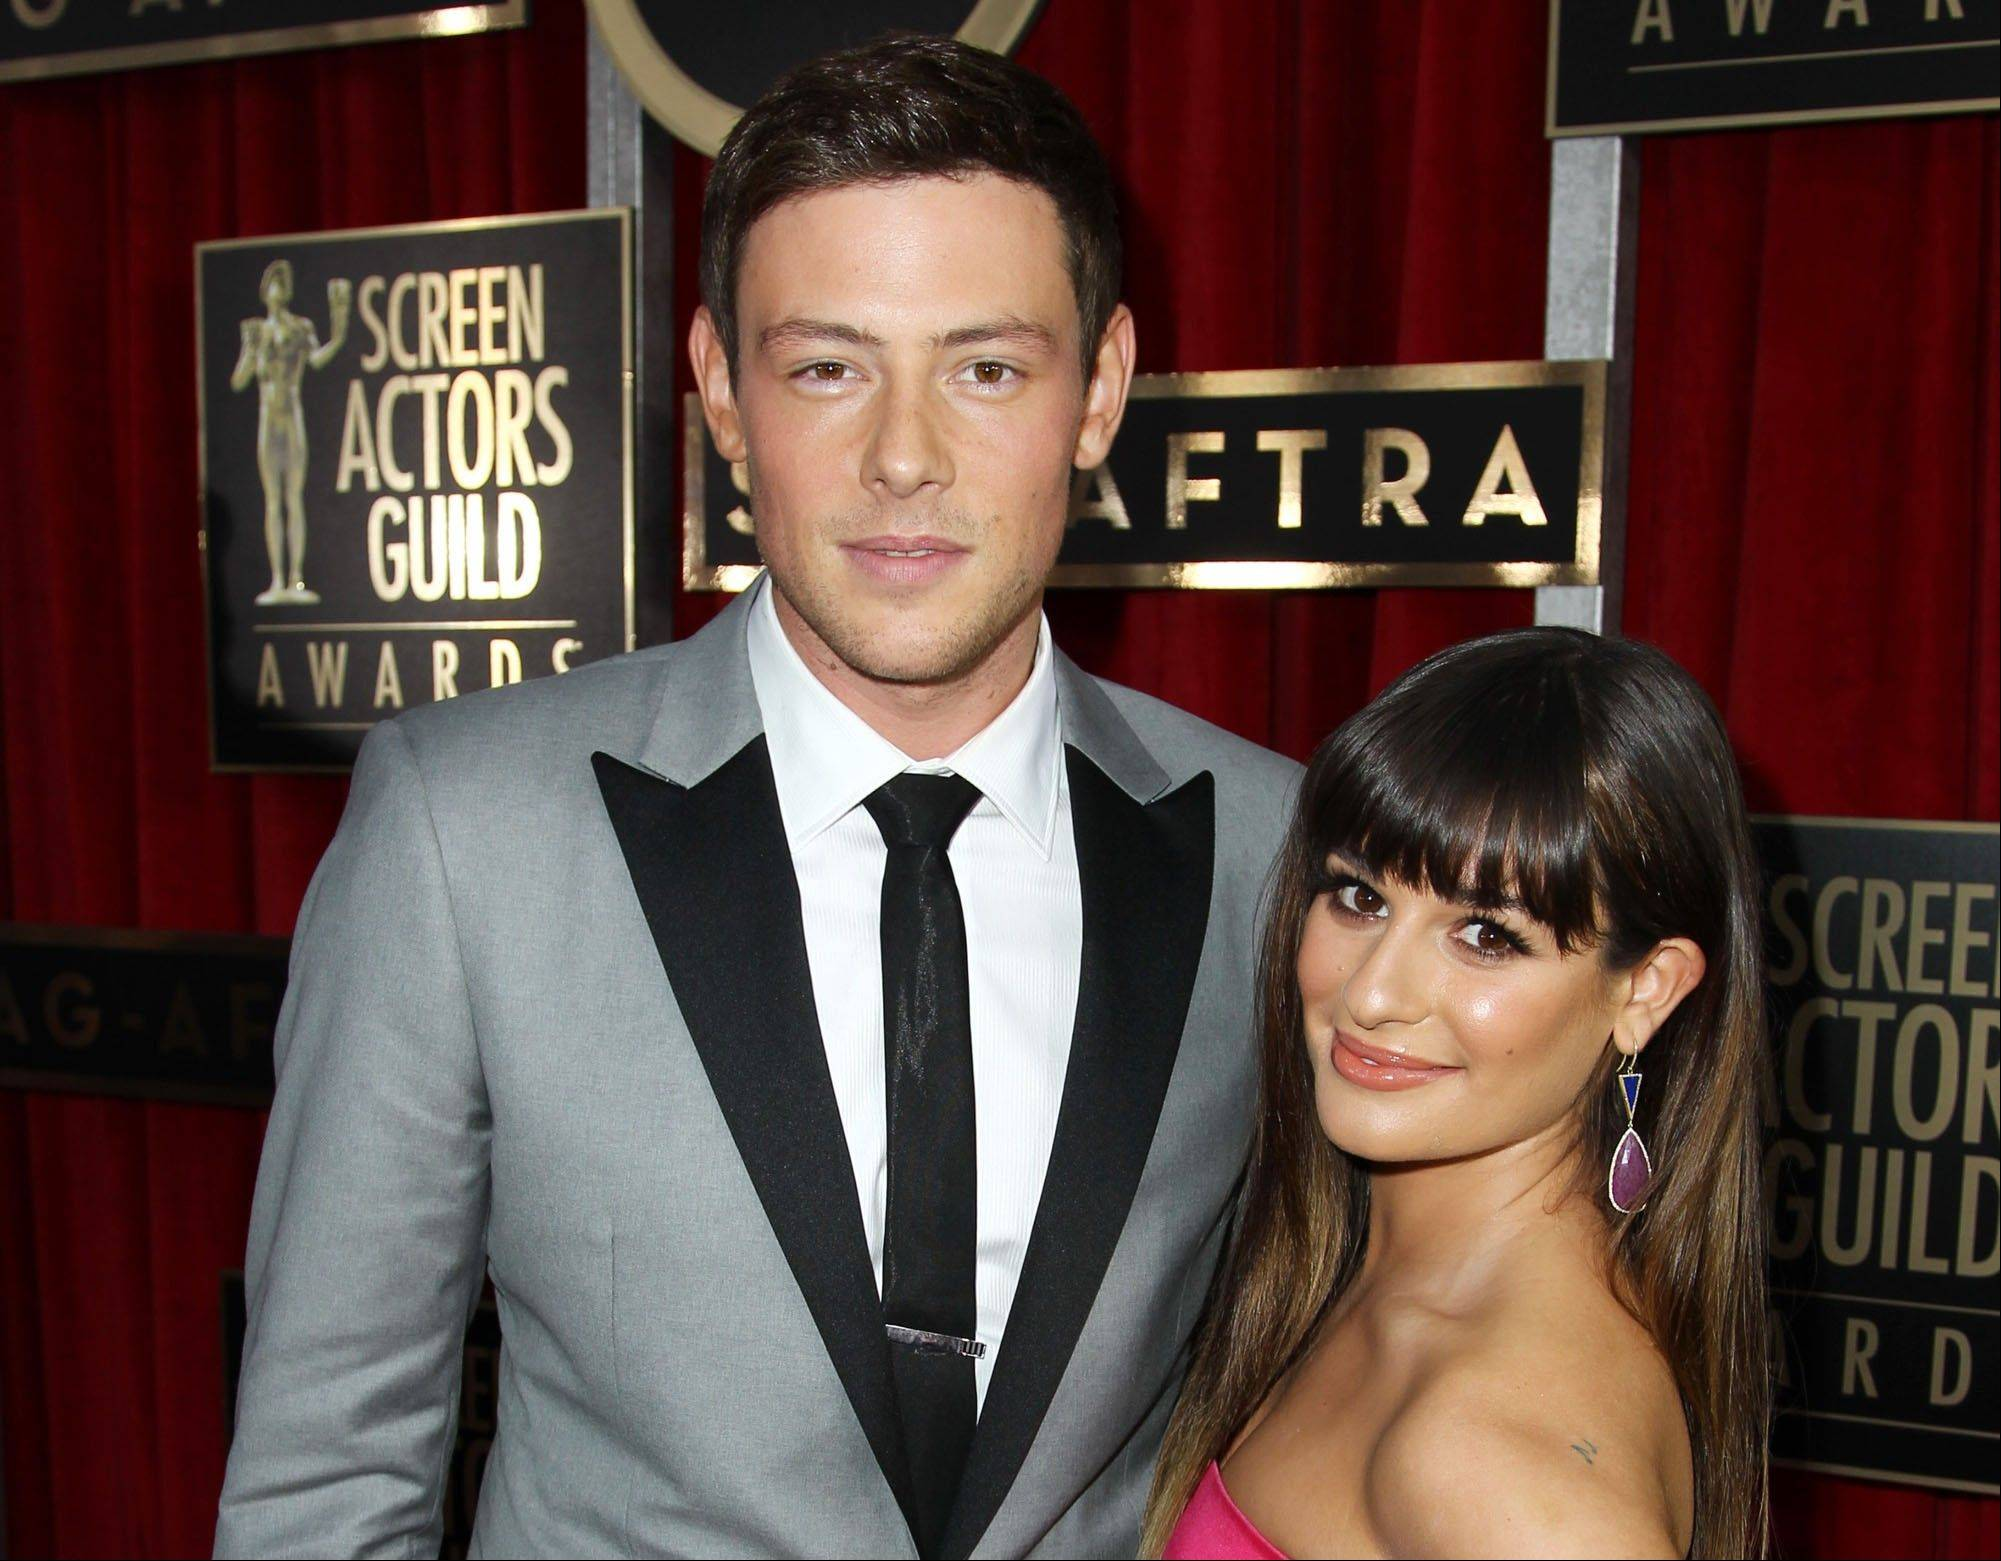 Lea Michele is breaking her silence online after her �Glee� co-star and real-life boyfriend Cory Monteith died of an overdose earlier this month. The actress posted a photo of her and Monteith on Twitter Monday along with a message thanking her followers for �helping me through this time with your enormous love & support.�